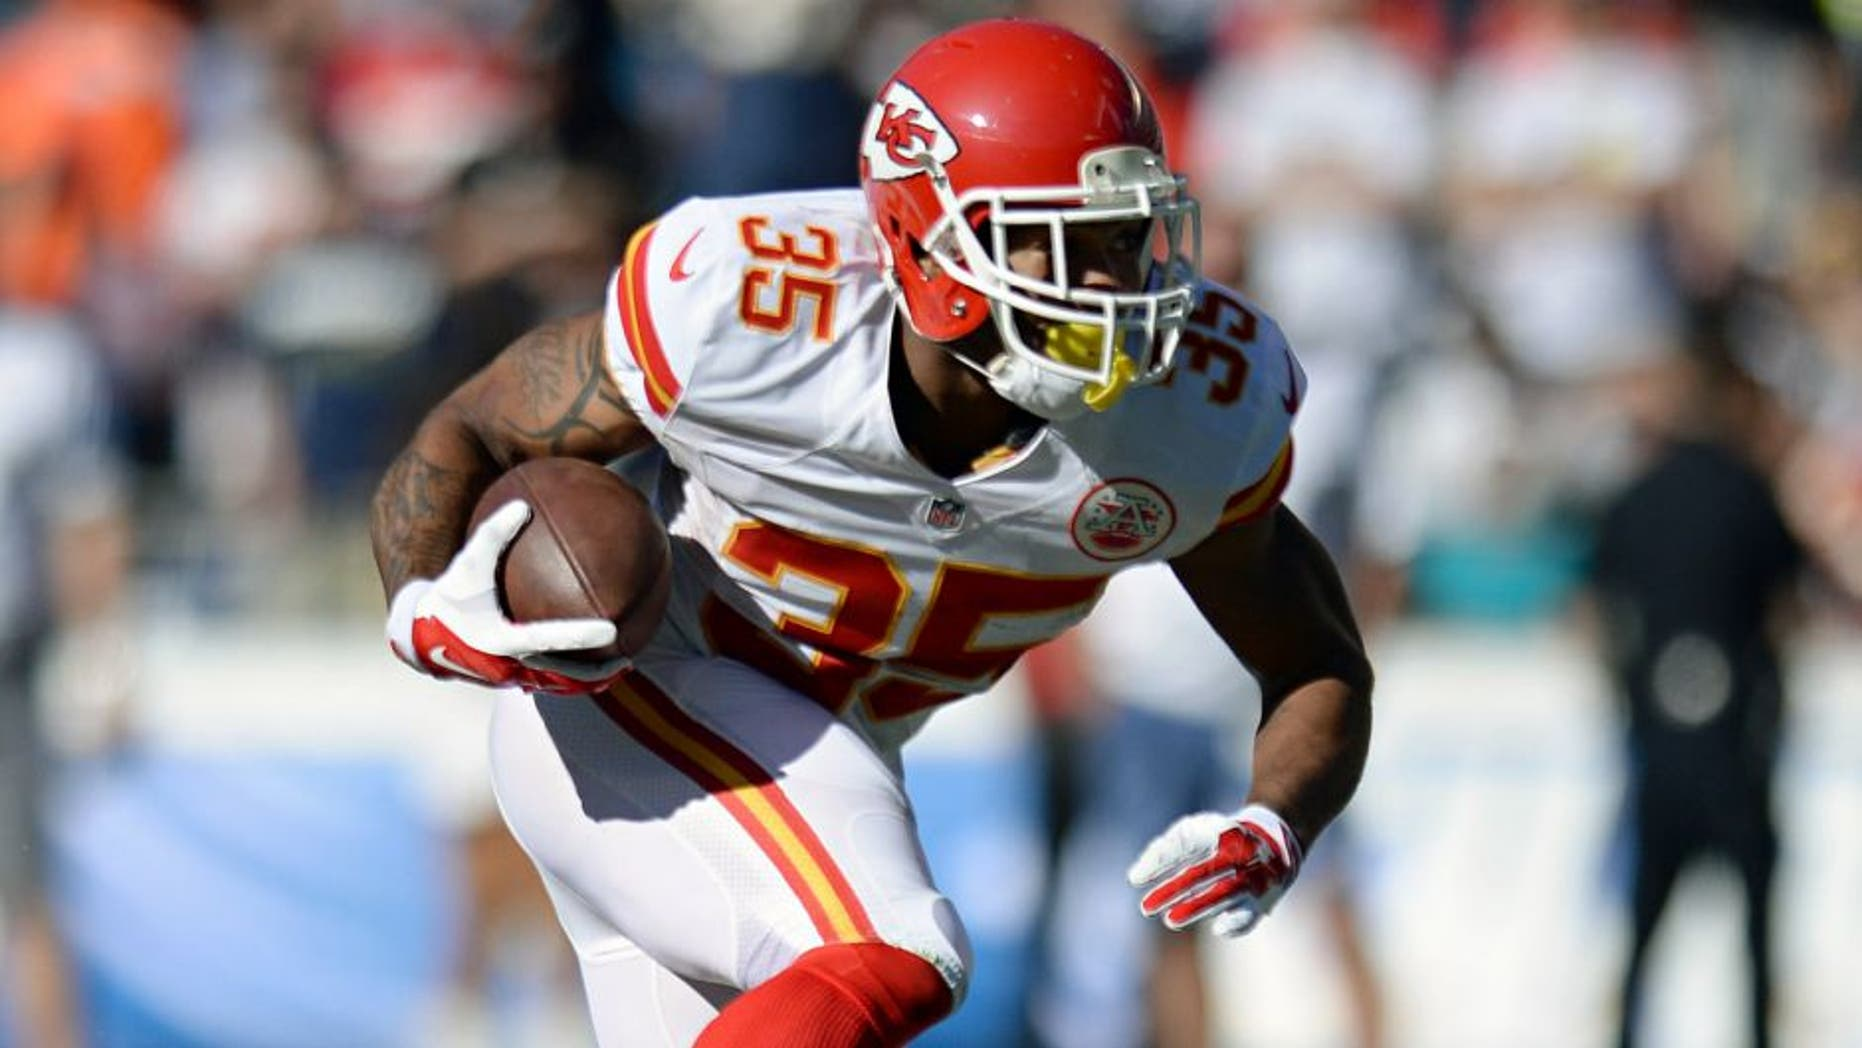 Nov 22, 2015; San Diego, CA, USA; Kansas City Chiefs running back Charcandrick West (35) runs the ball during the first quarter against the San Diego Chargers at Qualcomm Stadium. Mandatory Credit: Jake Roth-USA TODAY Sports